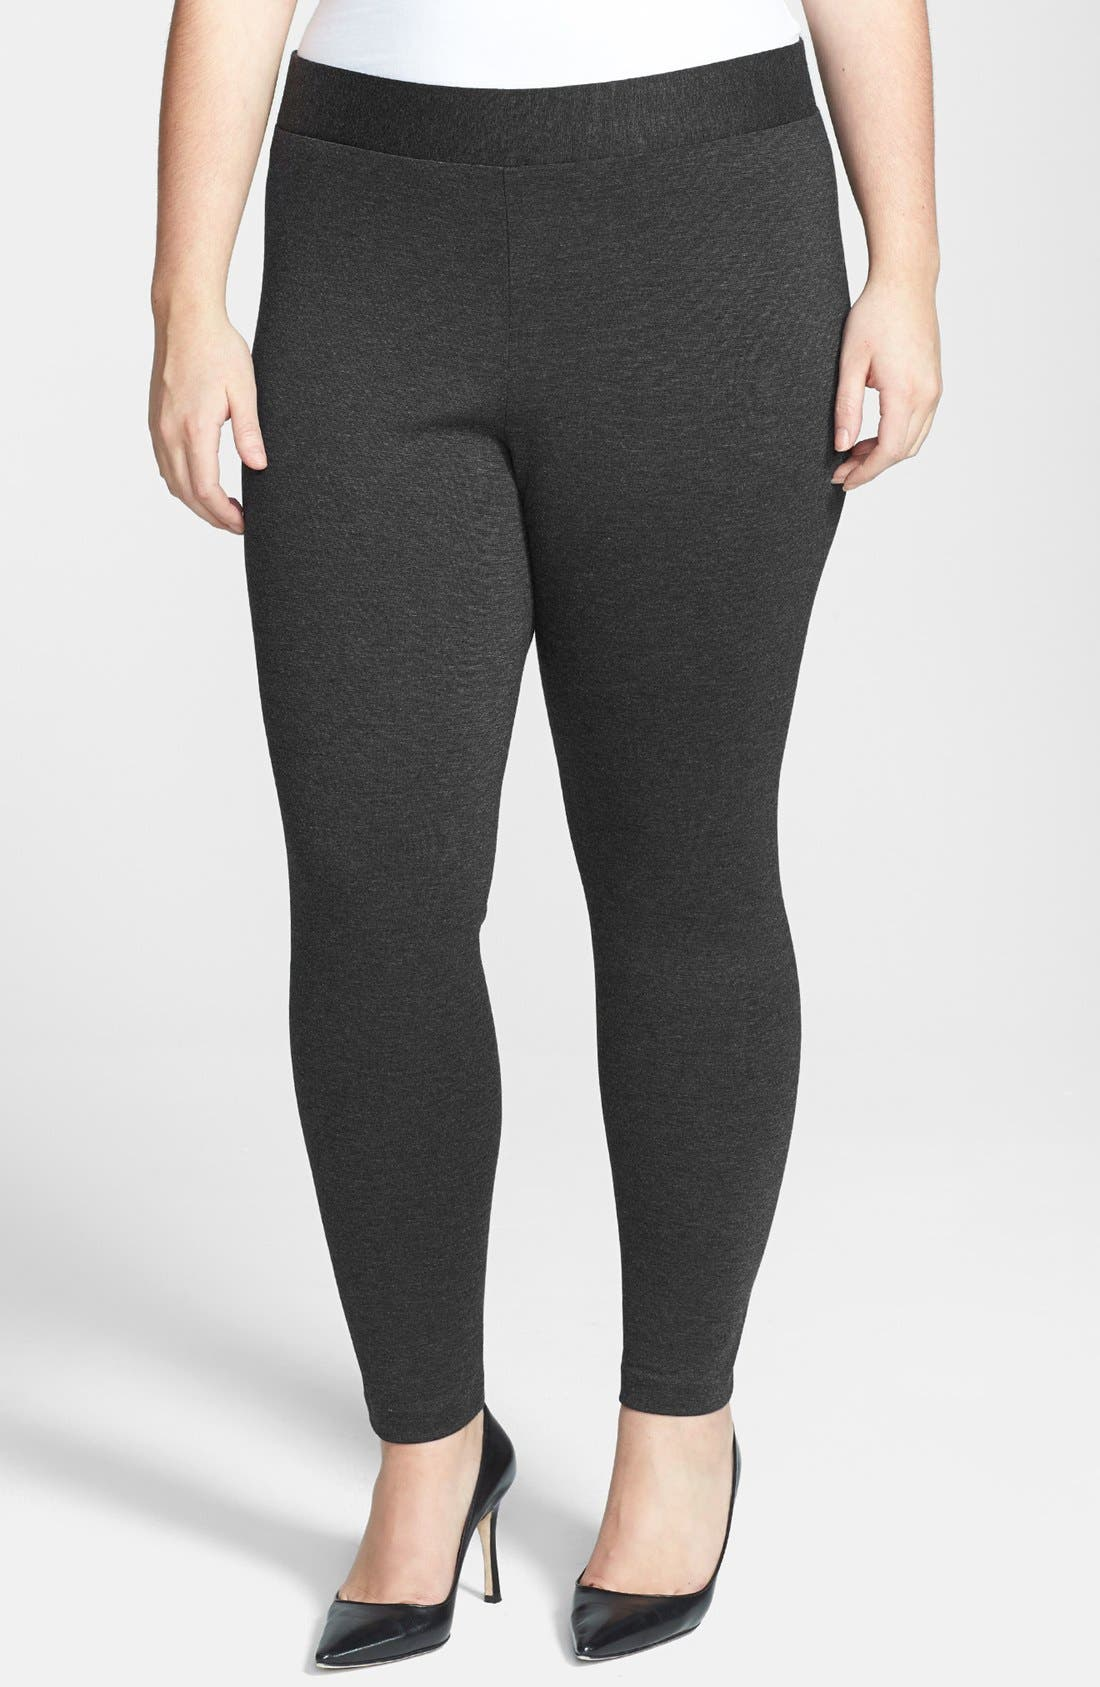 Main Image - Two by Vince Camuto Leggings (Plus Size)